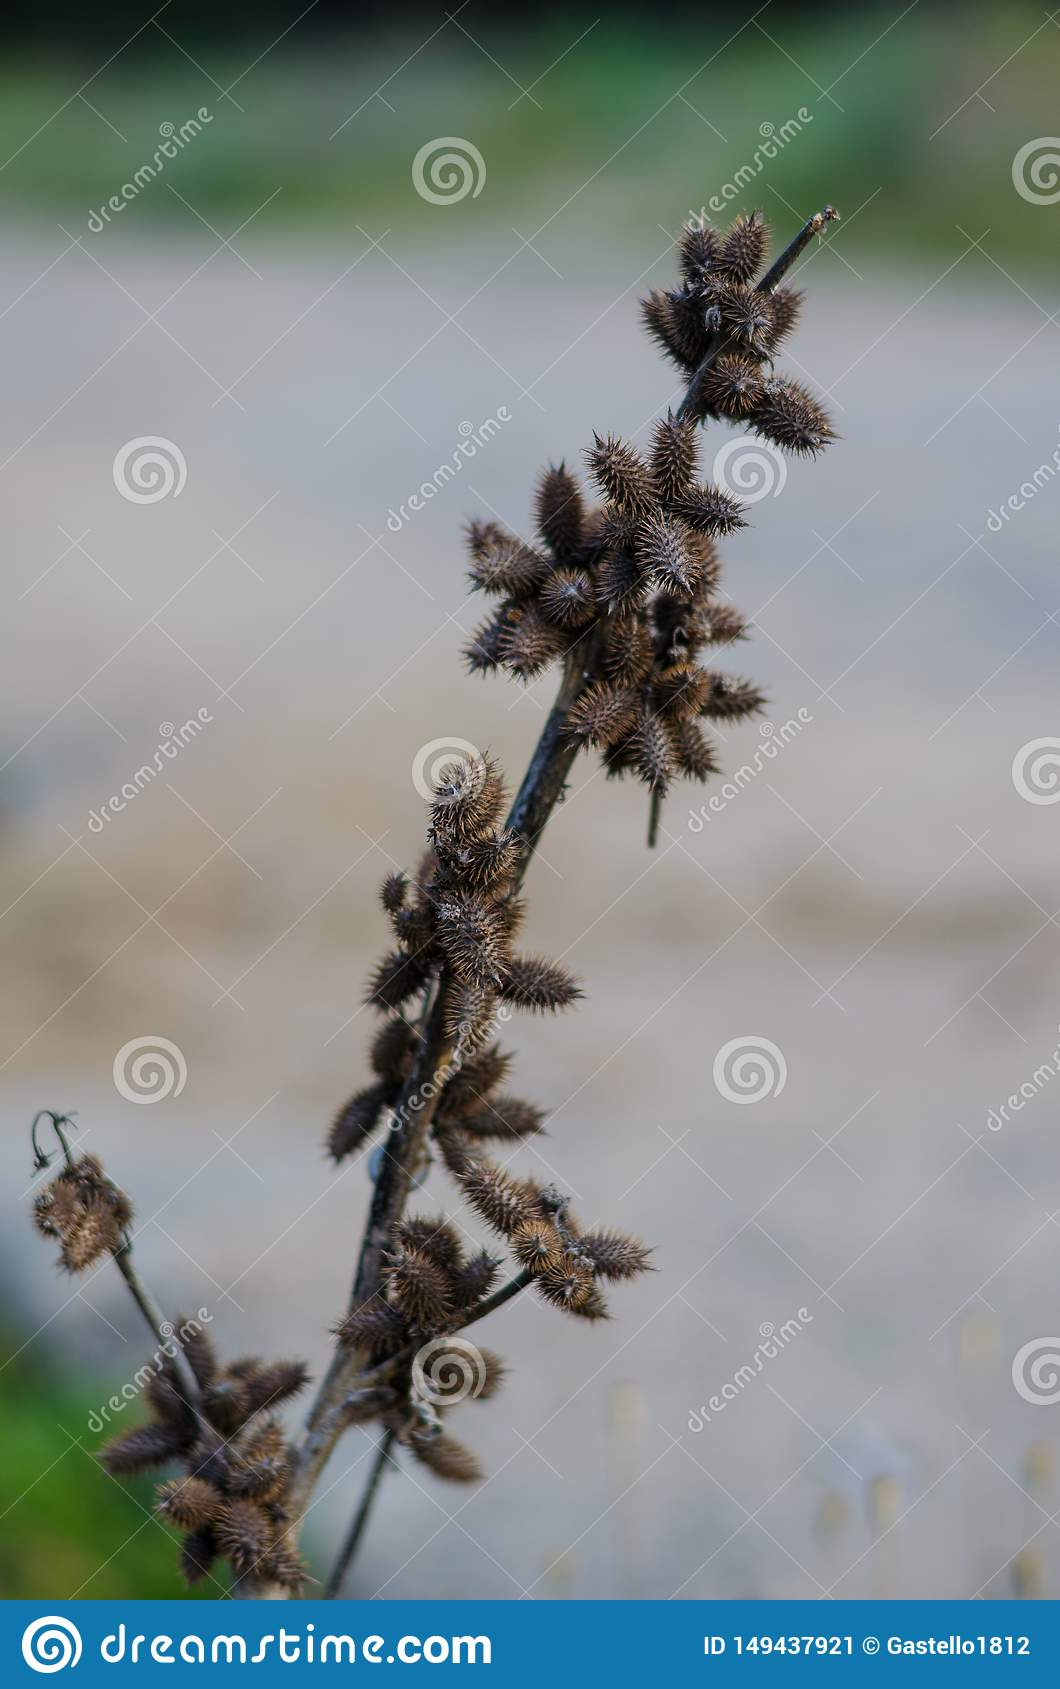 Dry stem with prickly fruits on it. Diagonal arrangement. Blurred background